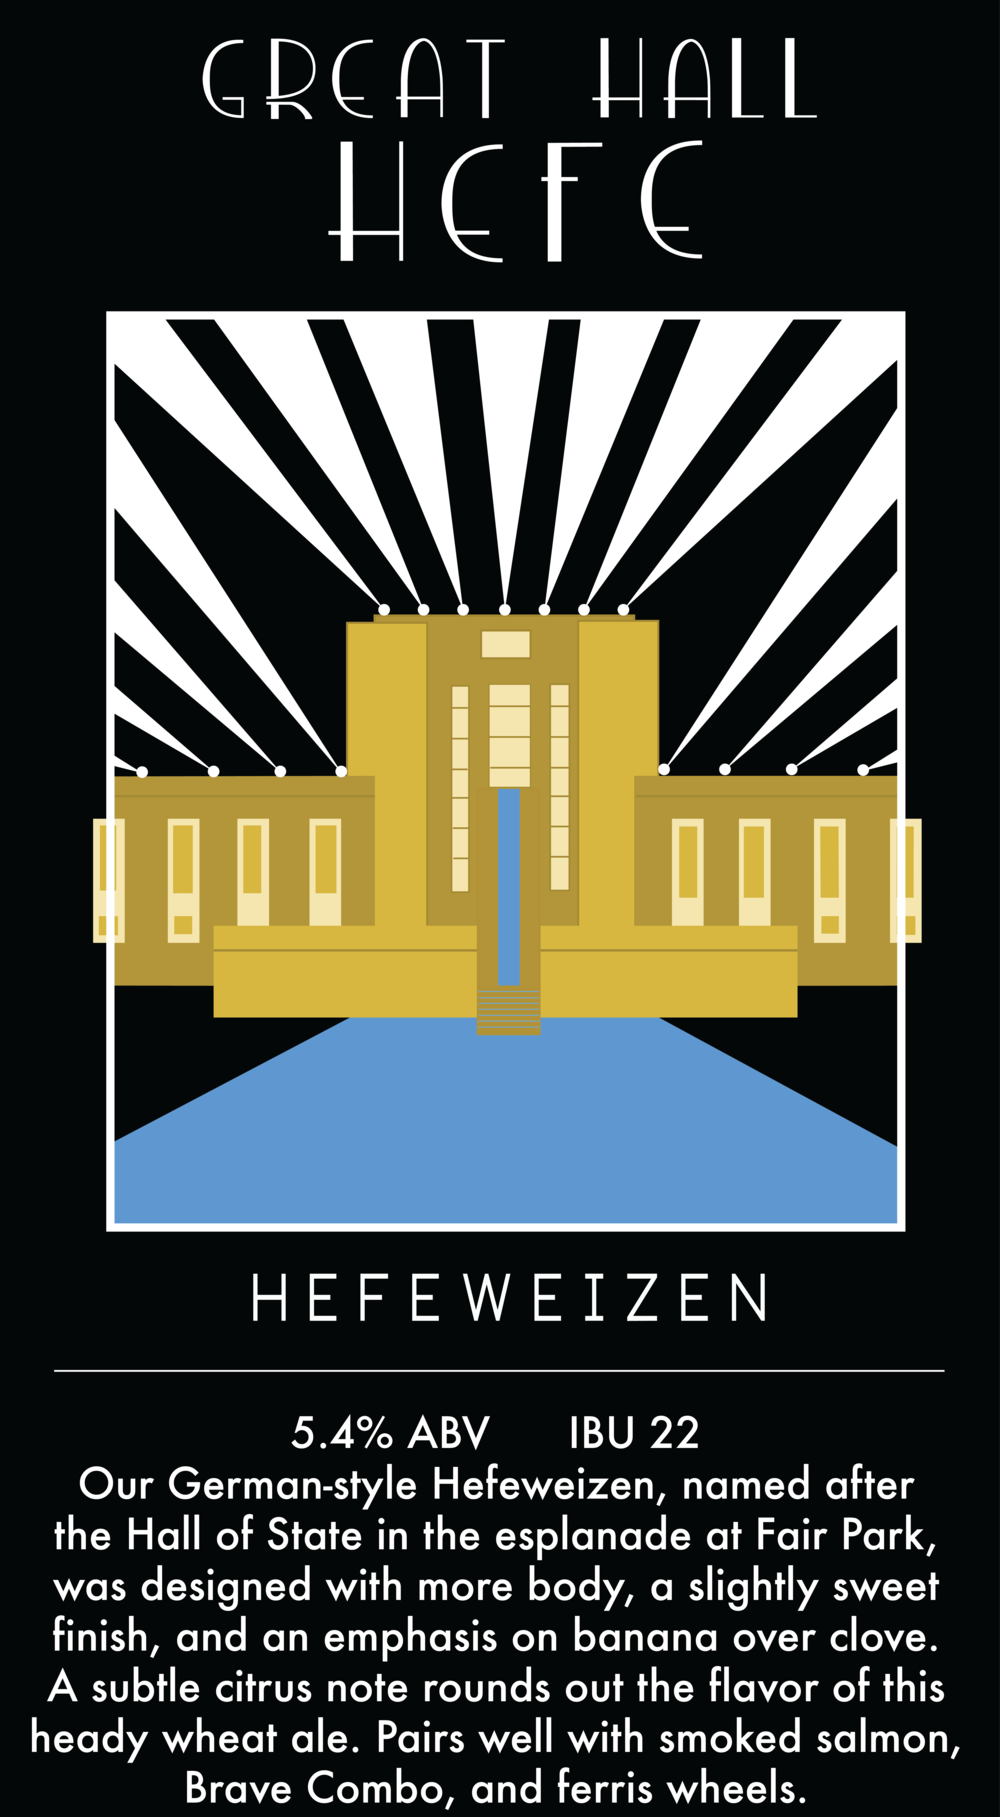 Great Hall Hefe Beer Poster.png